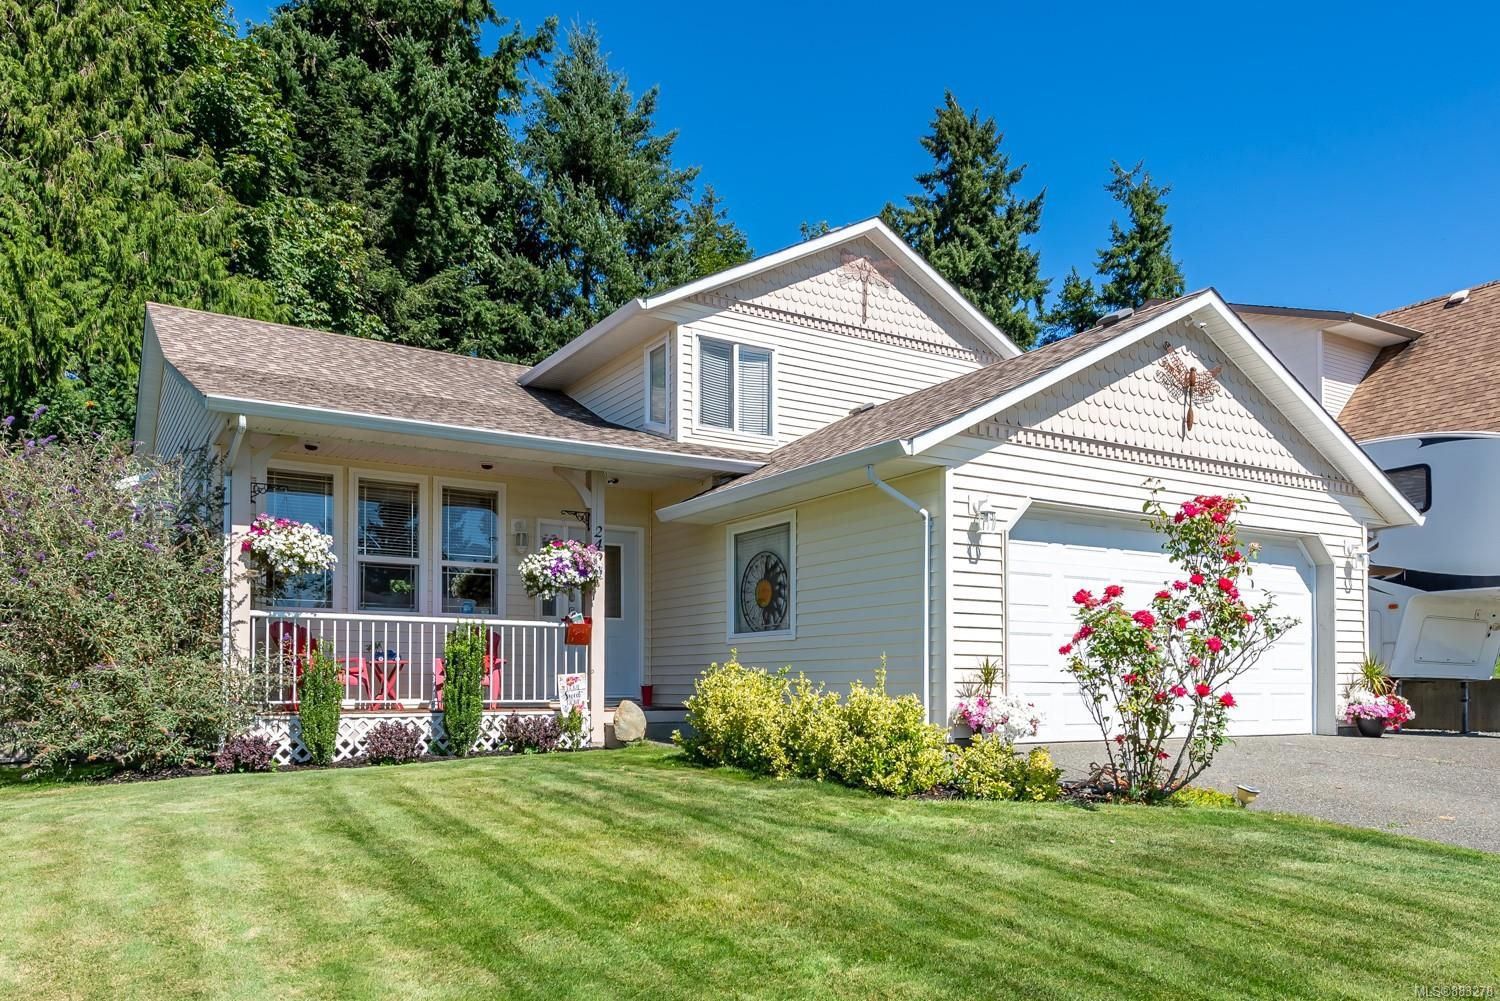 Main Photo: 2496 E 9th St in : CV Courtenay East House for sale (Comox Valley)  : MLS®# 883278